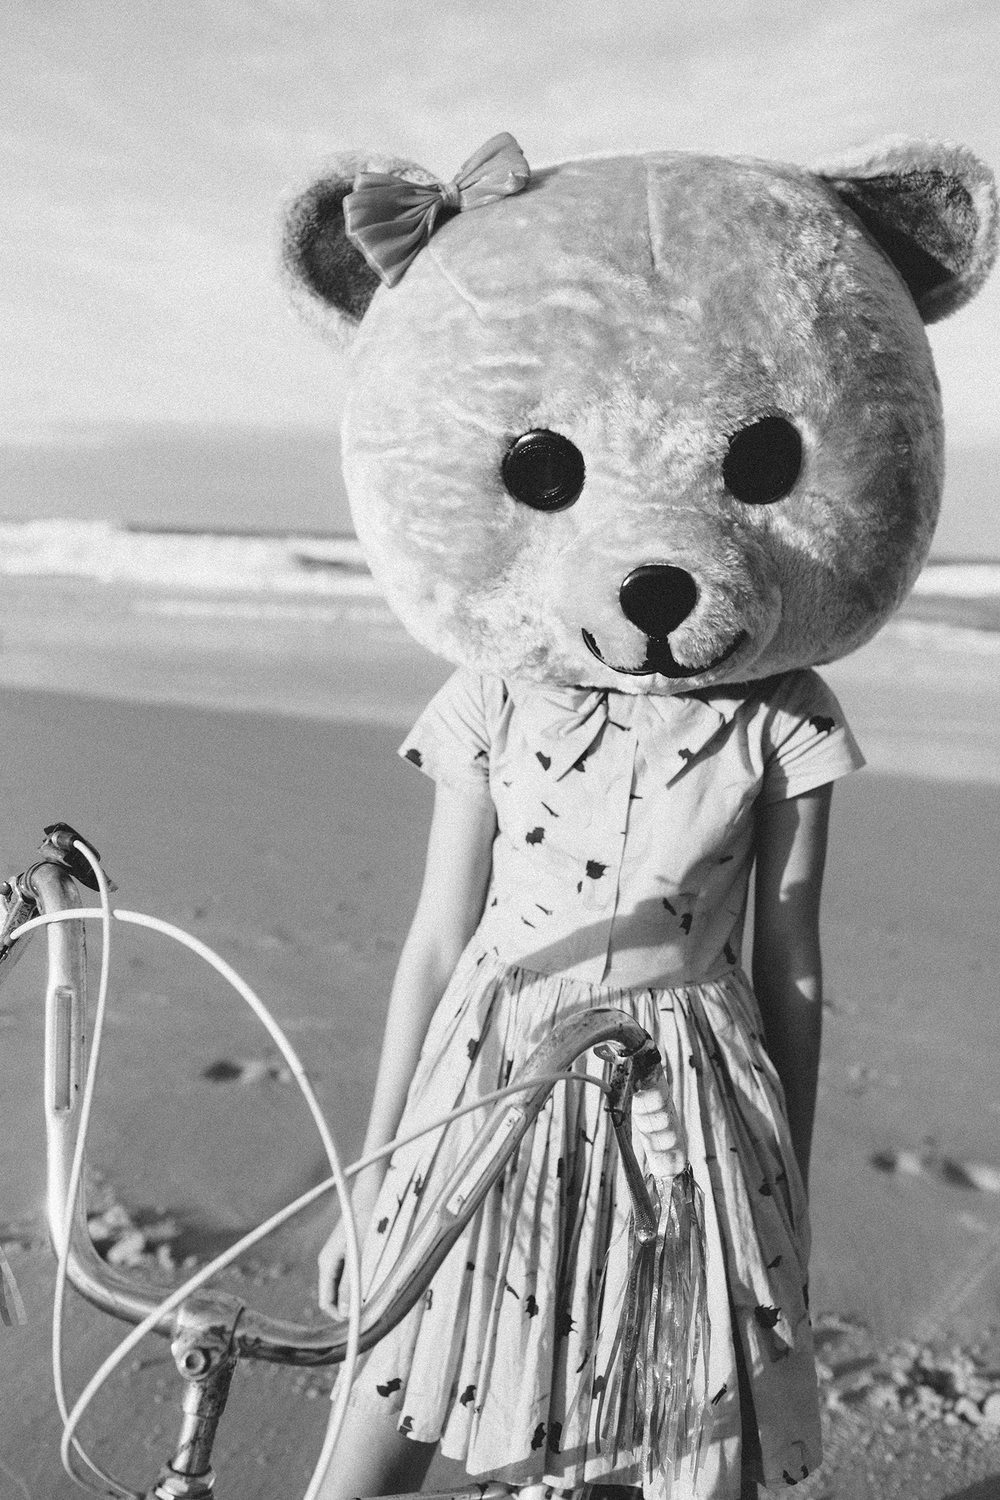 bike-and-bear-bw111.jpg